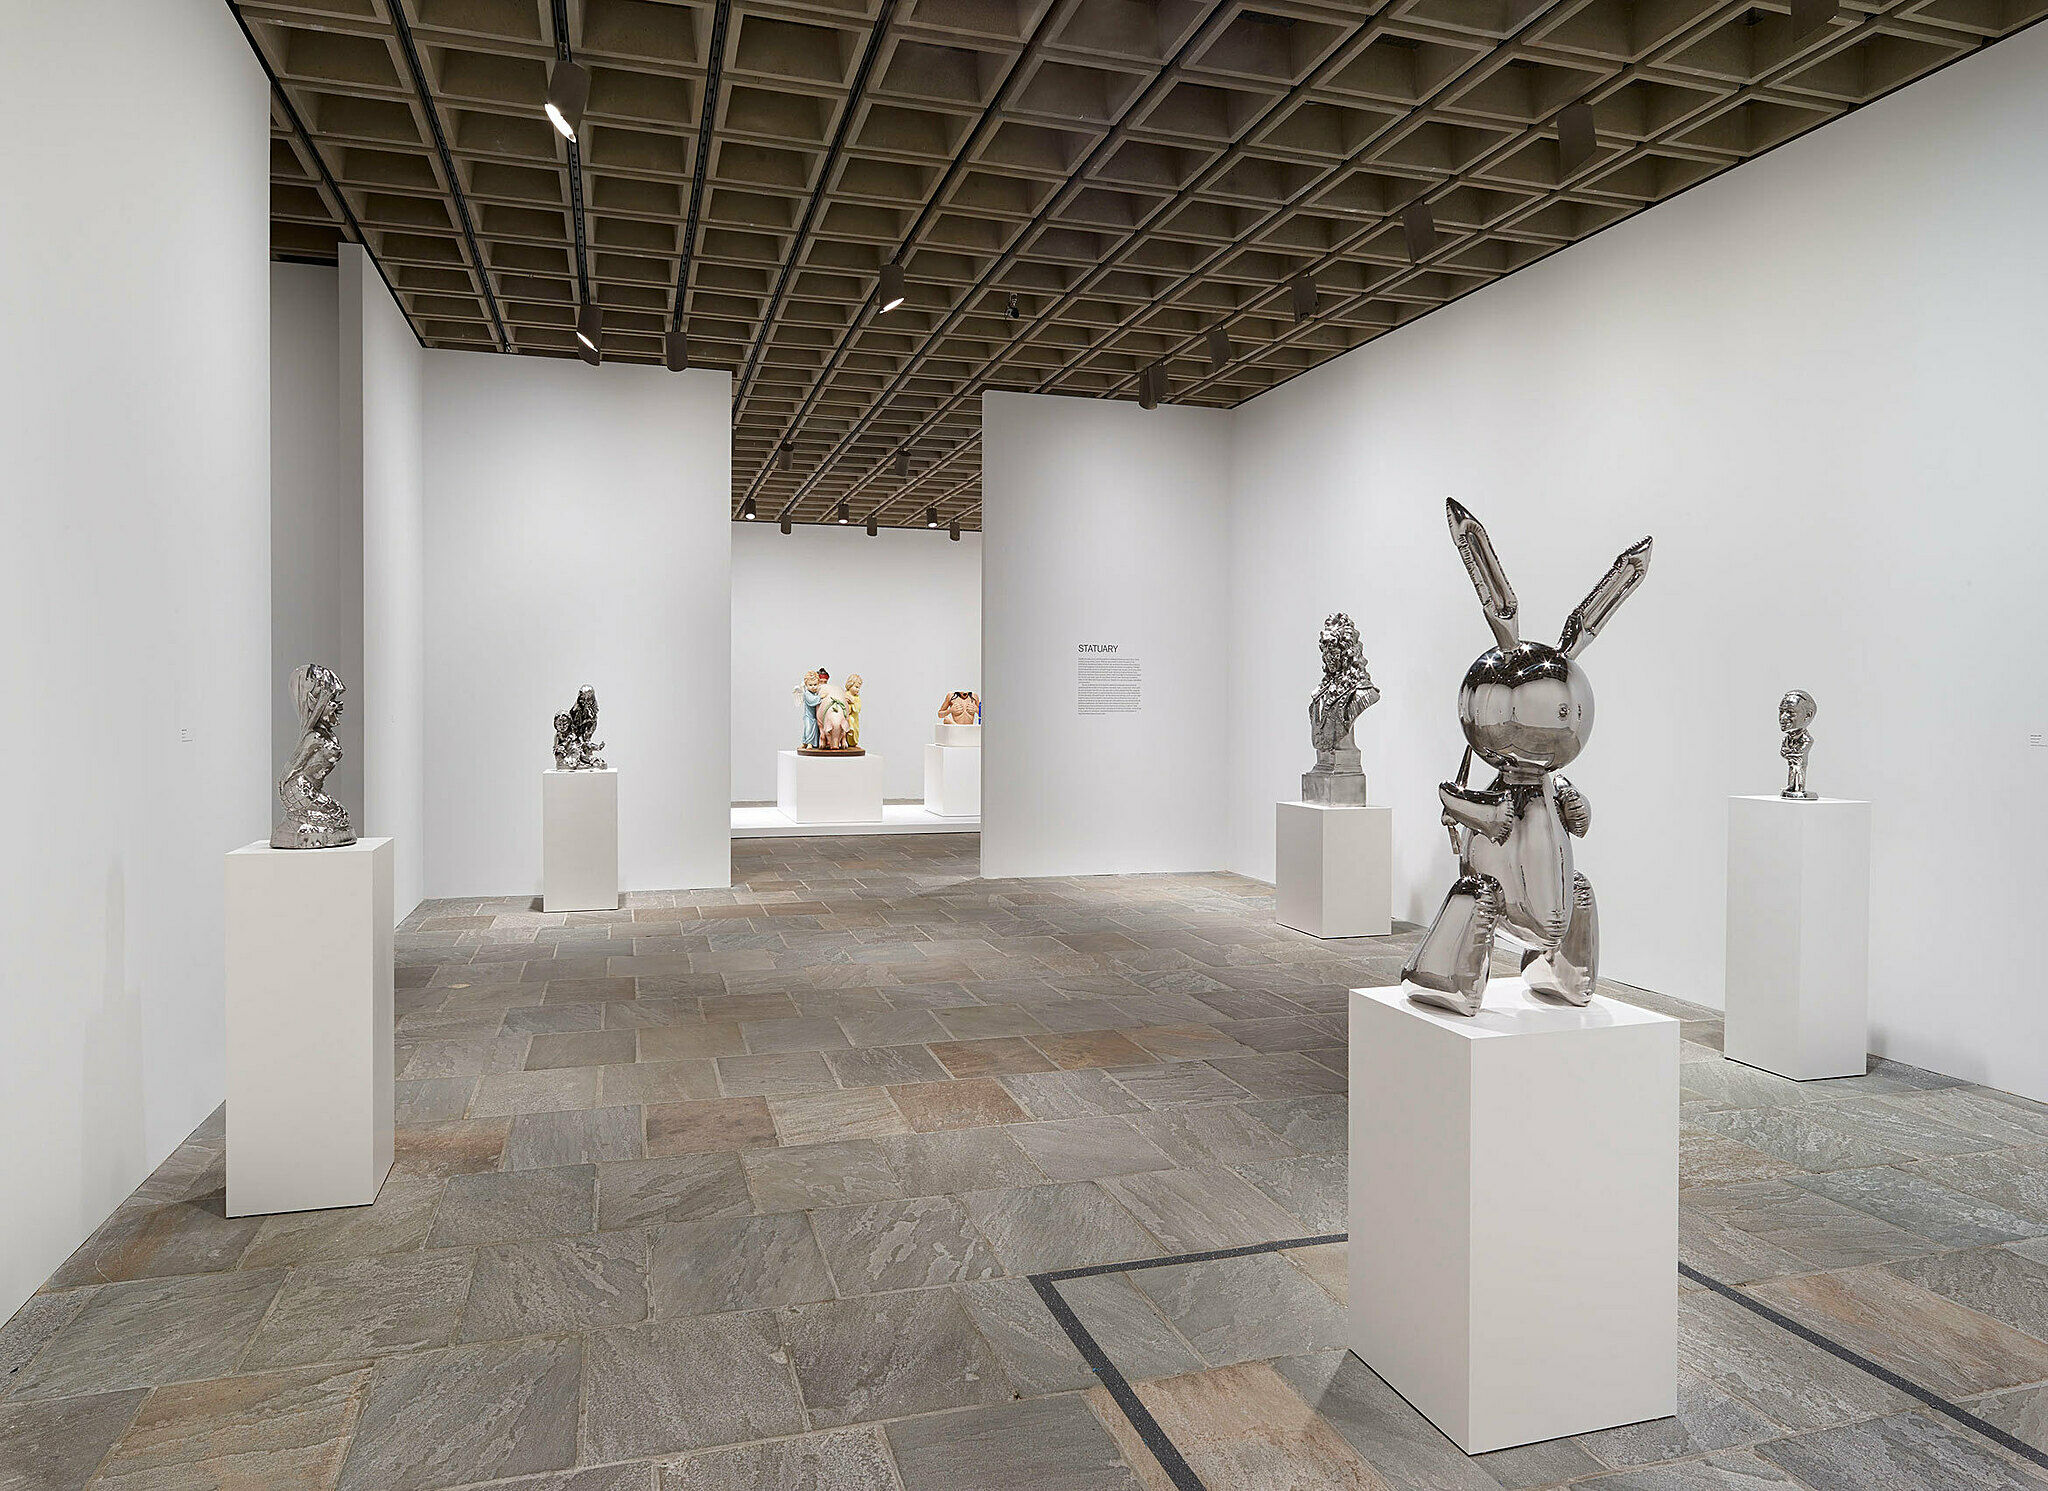 View of gallery from behind the rabbit statue.